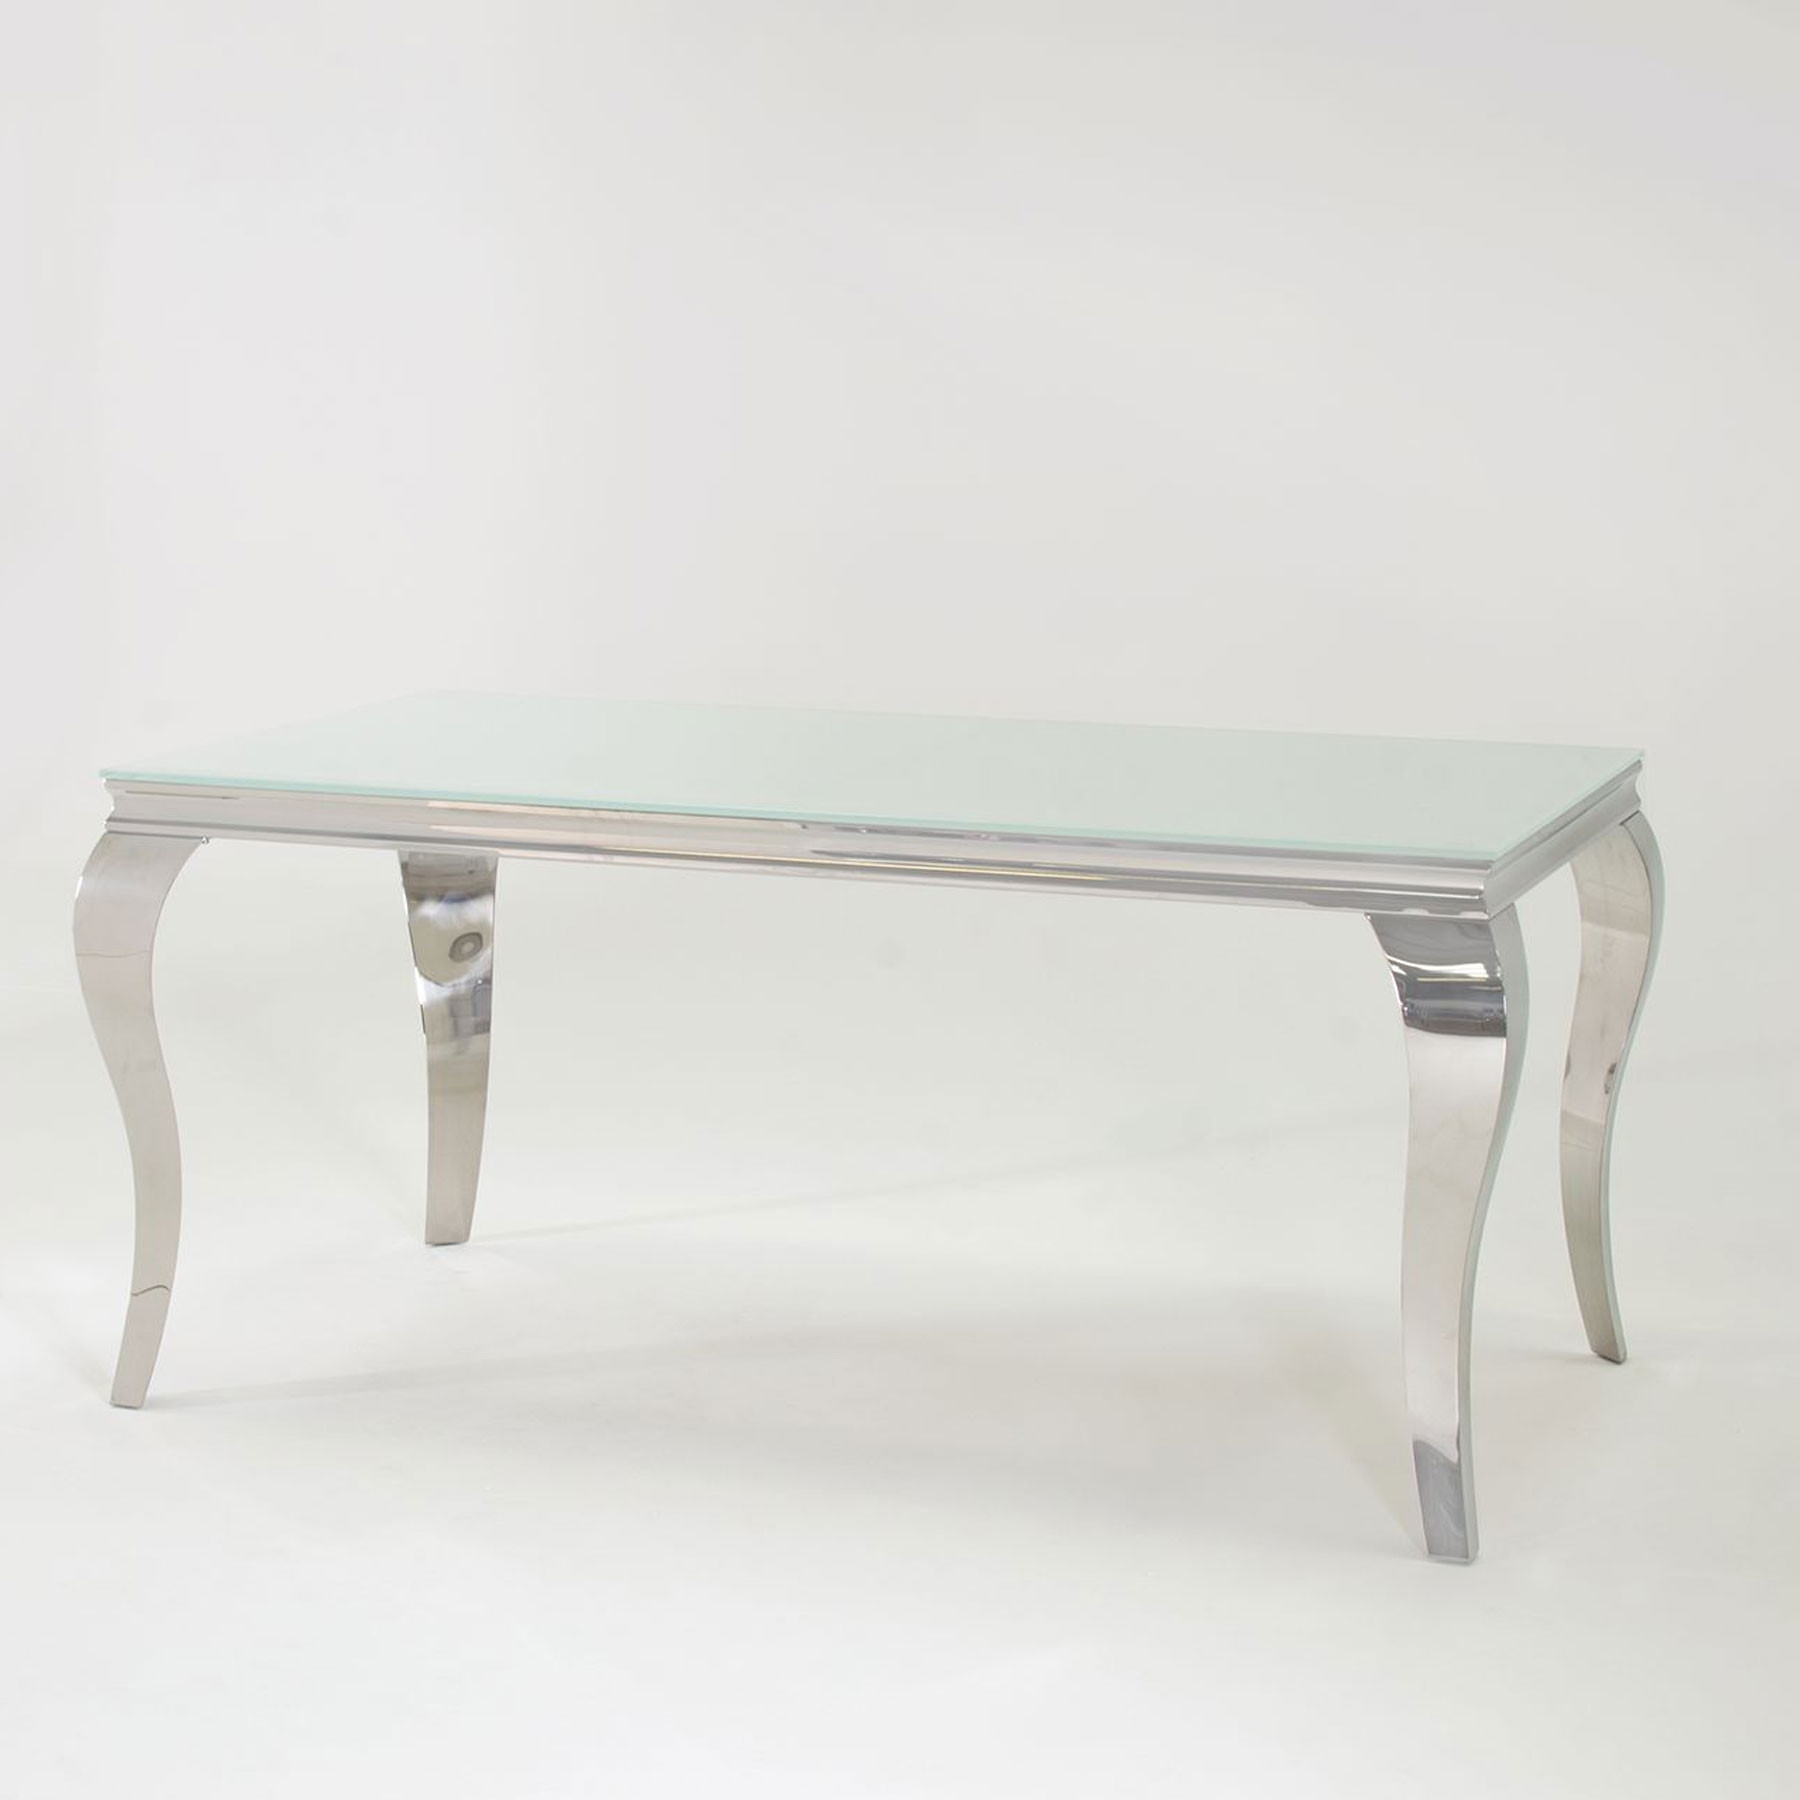 Fadenza White Glass 200Cm Dining Table For Best And Newest Glass And Stainless Steel Dining Tables (View 22 of 25)